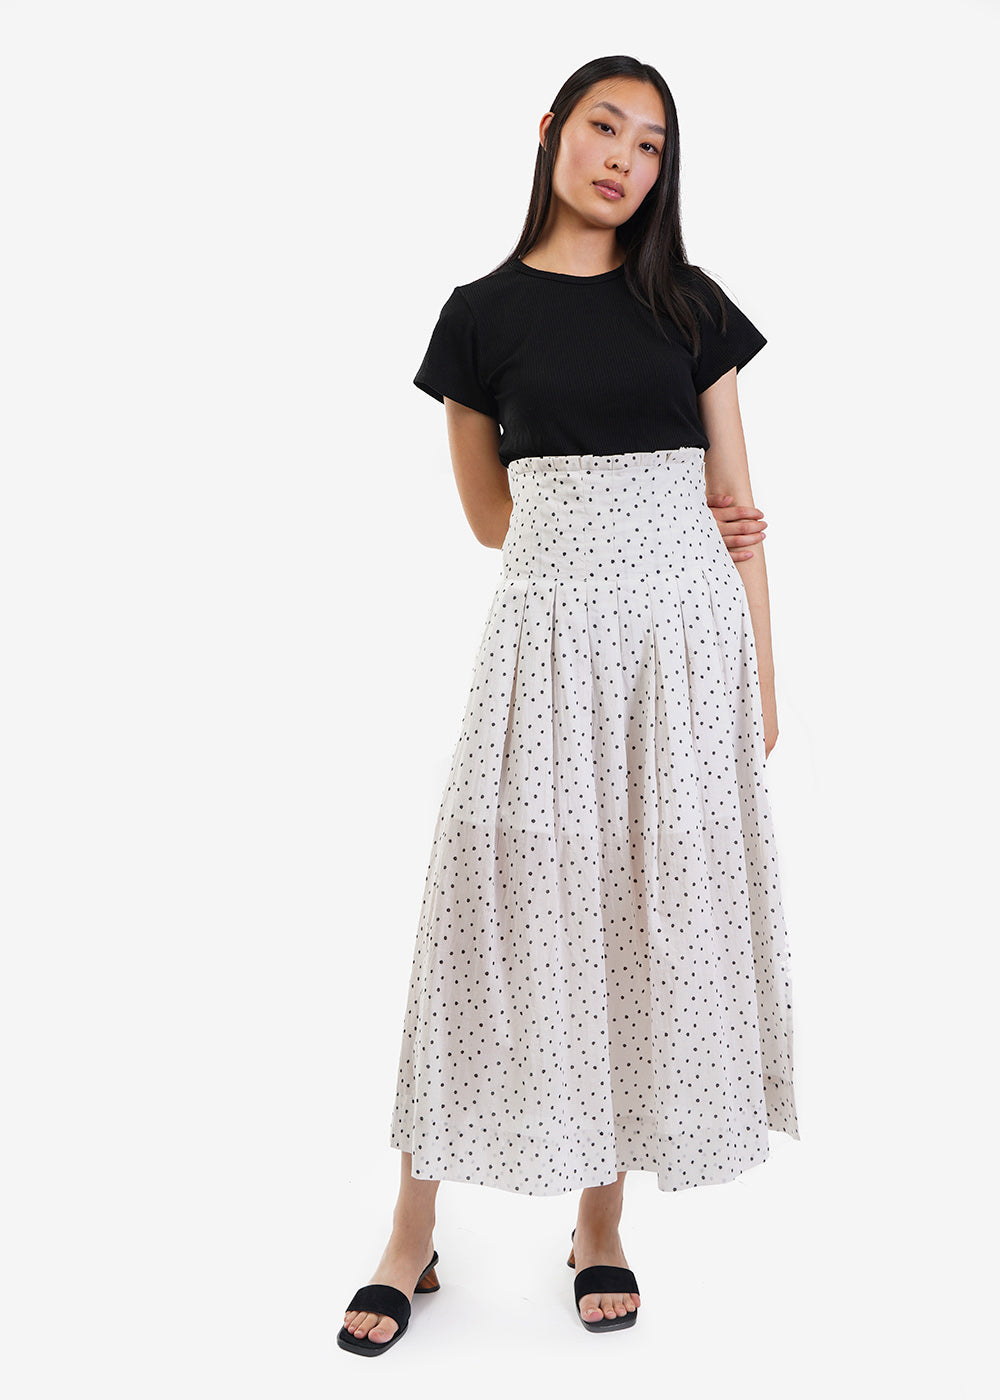 Ajaie Alaie Gather Together Skirt — New Classics Studios